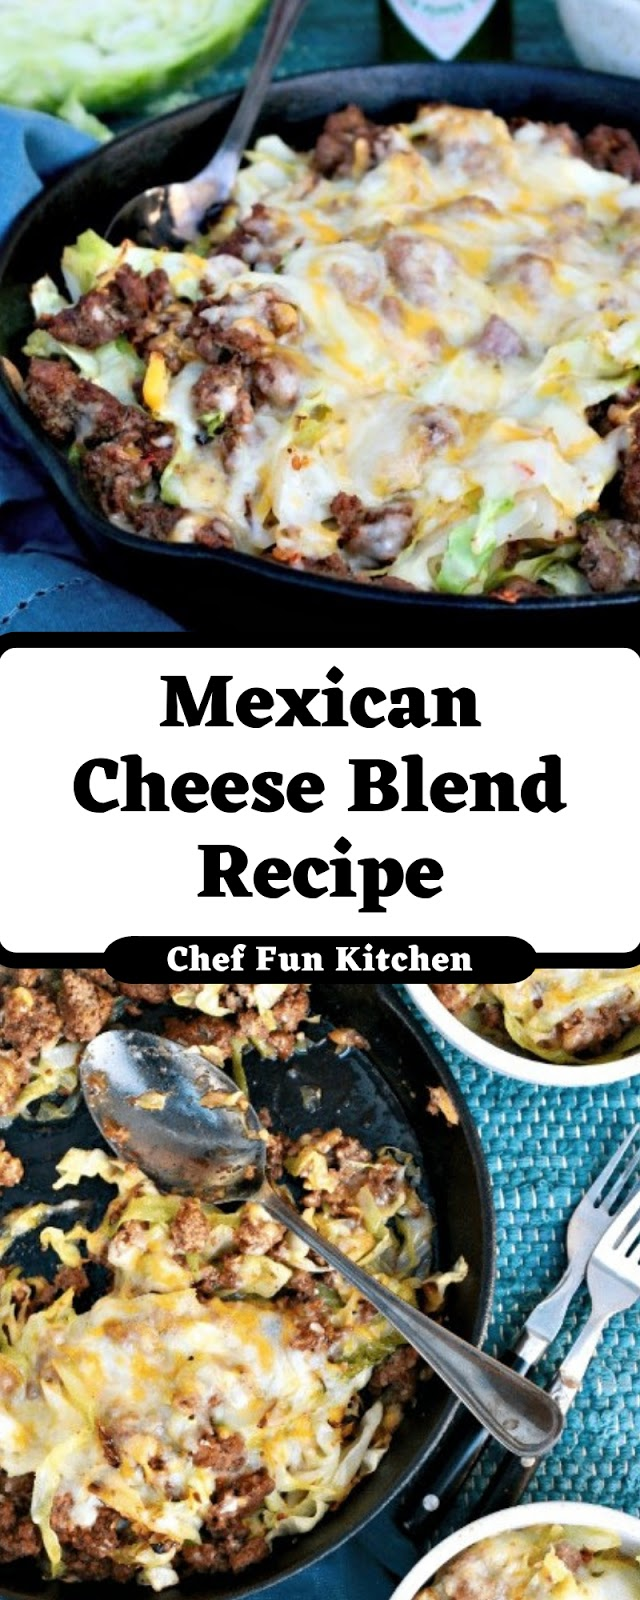 Mexican Cheese Blend Recipe